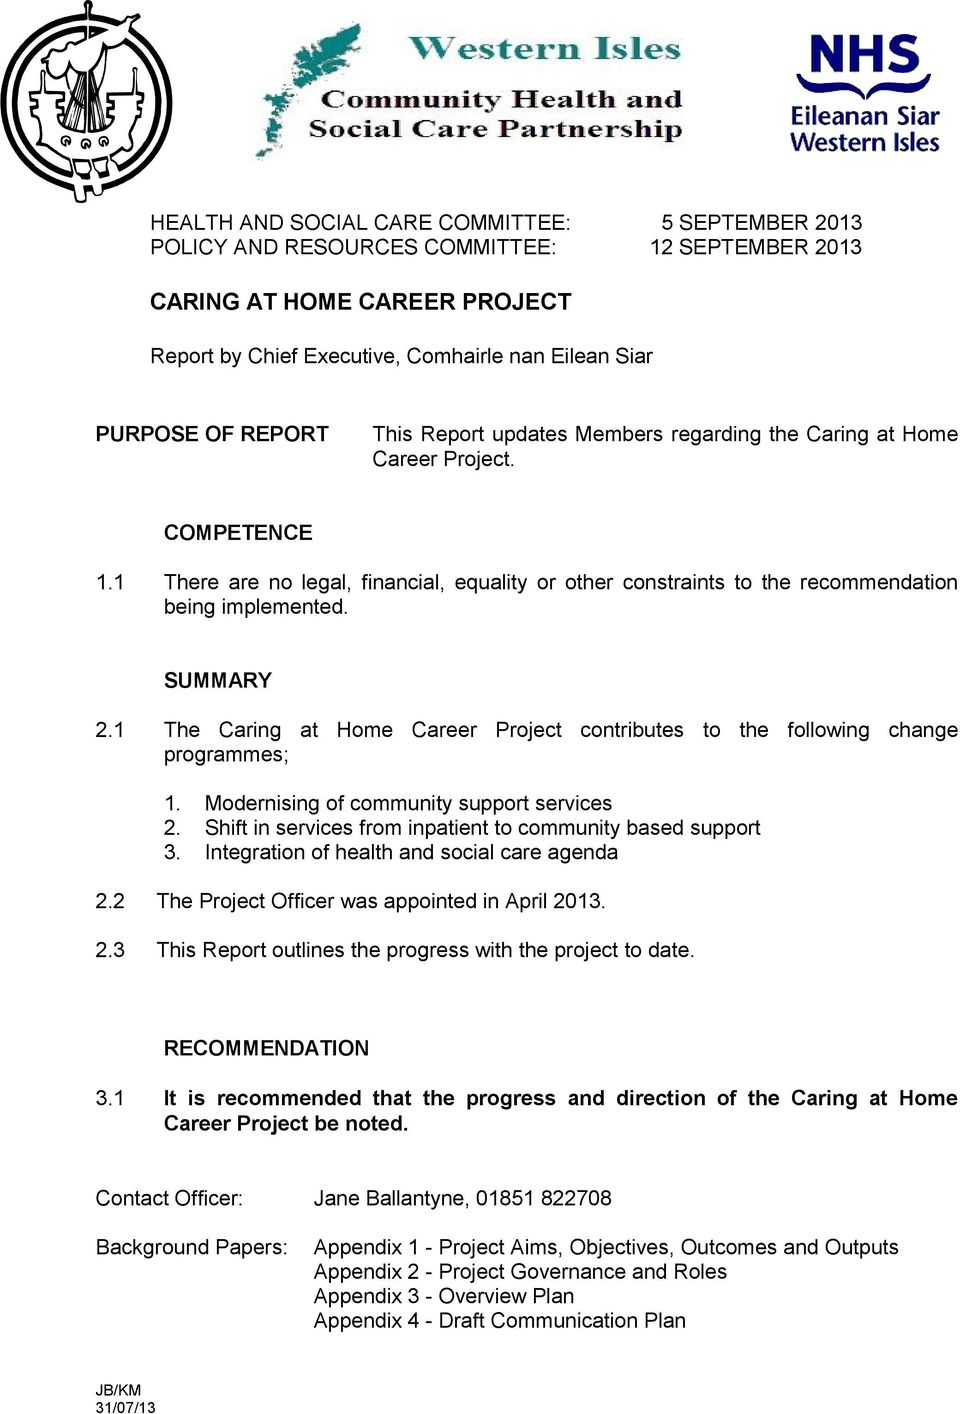 SUMMARY 2.1 The Caring at Home Career Project contributes to the following change programmes; 1. Modernising of community support services 2.